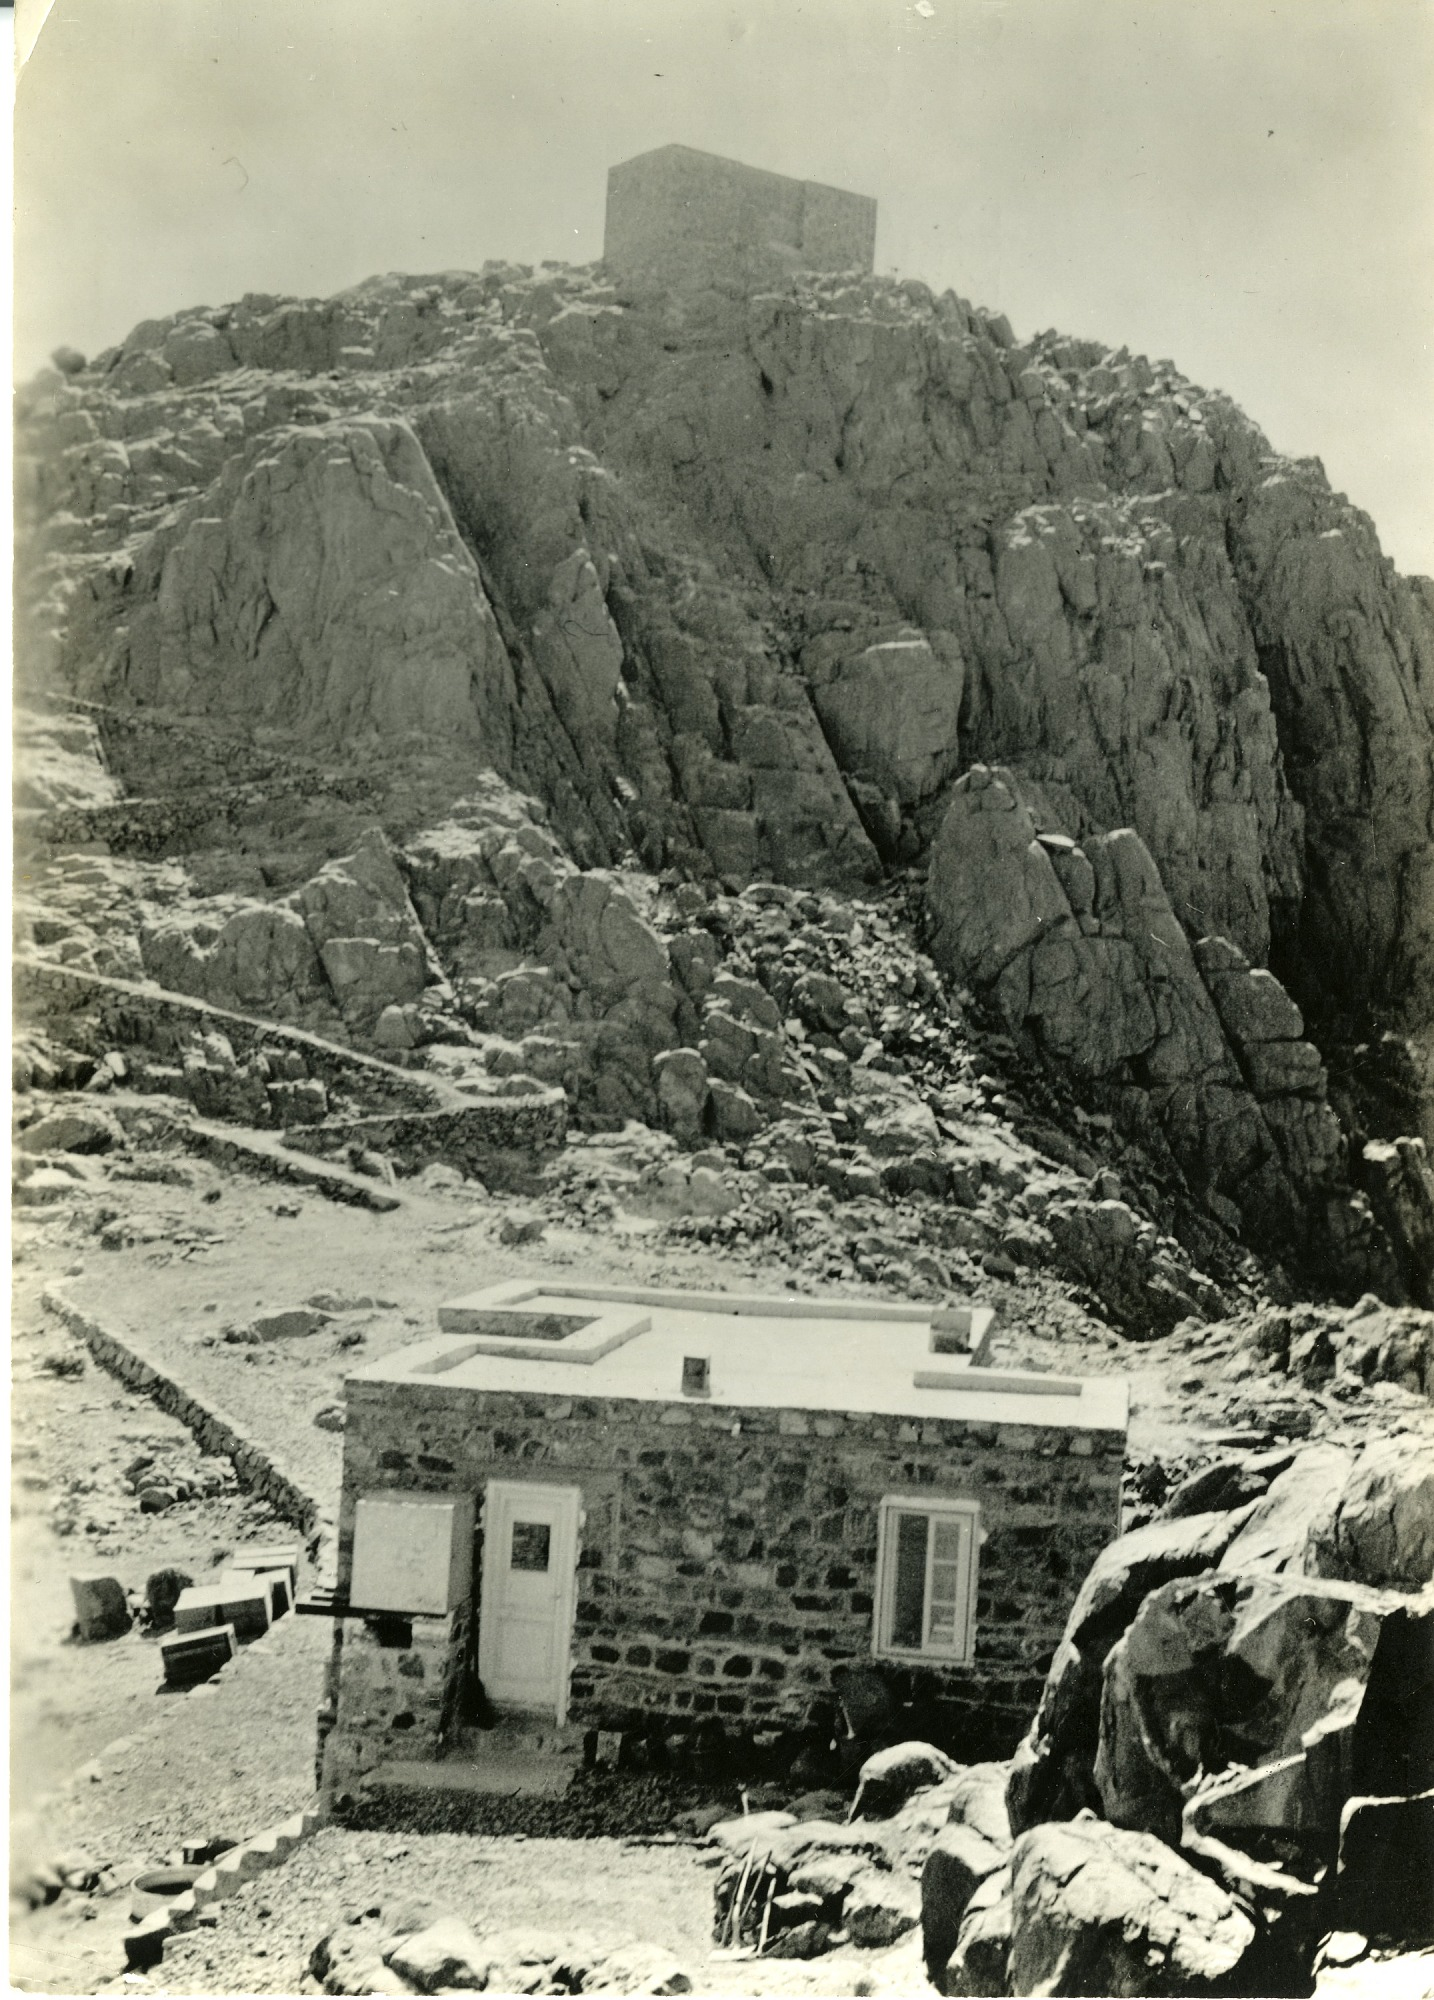 Observatory on Mount St. Katherine, Egypt